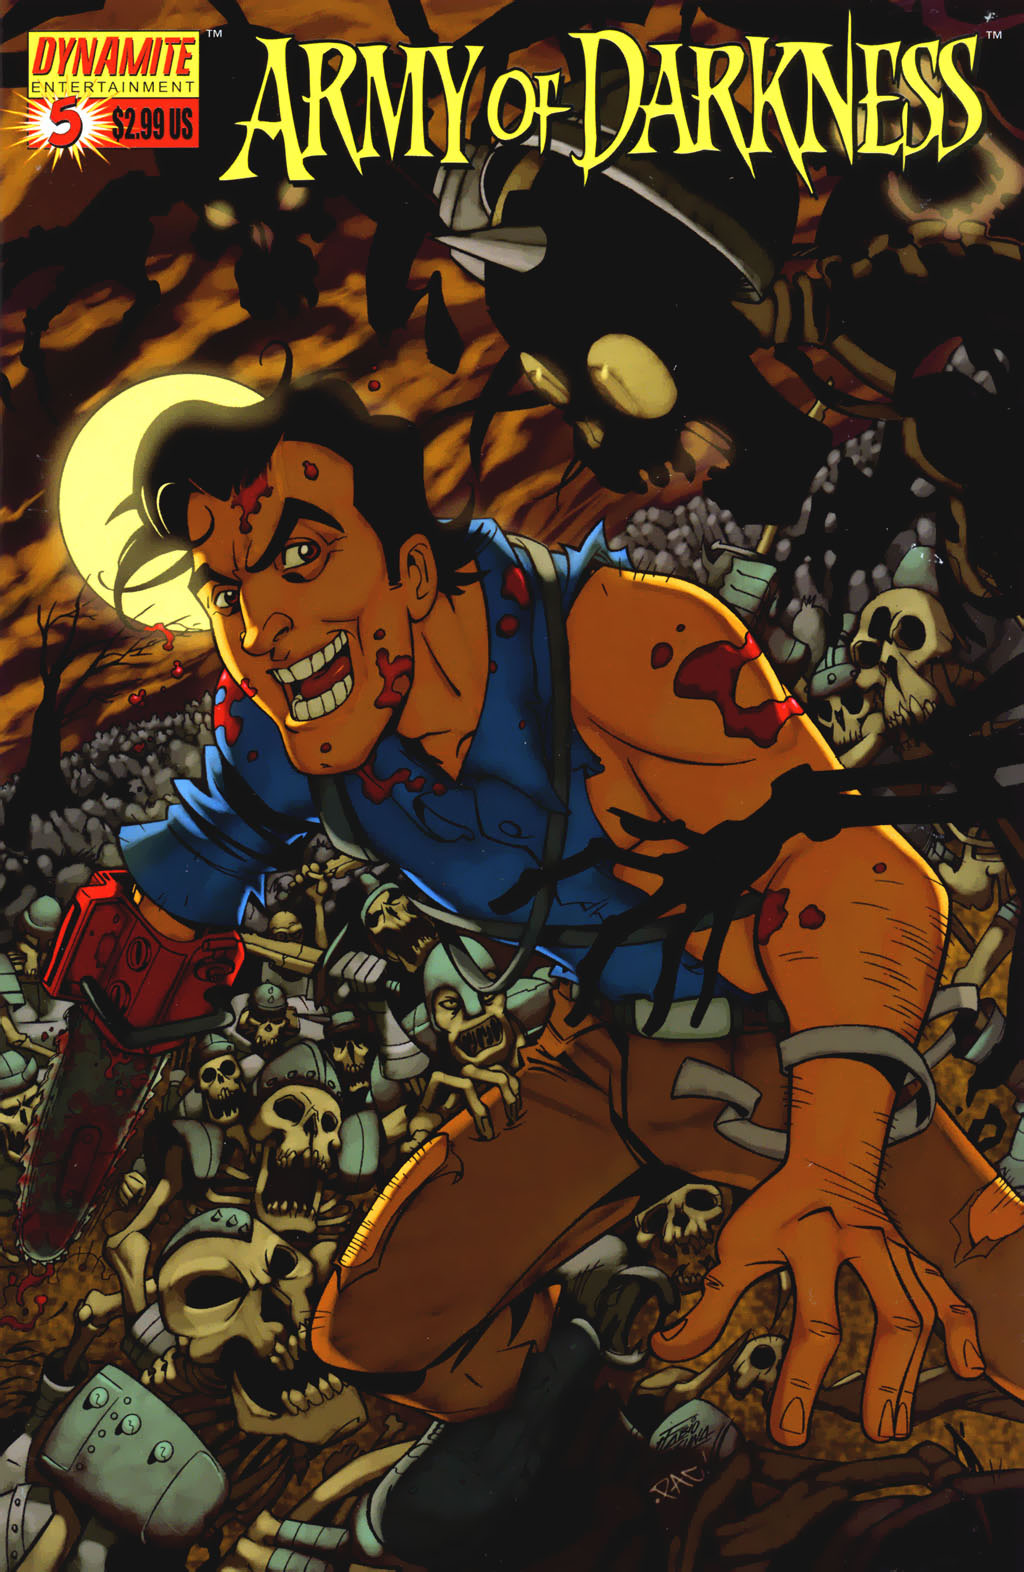 Army of Darkness (2006) Issue #5 #1 - English 3